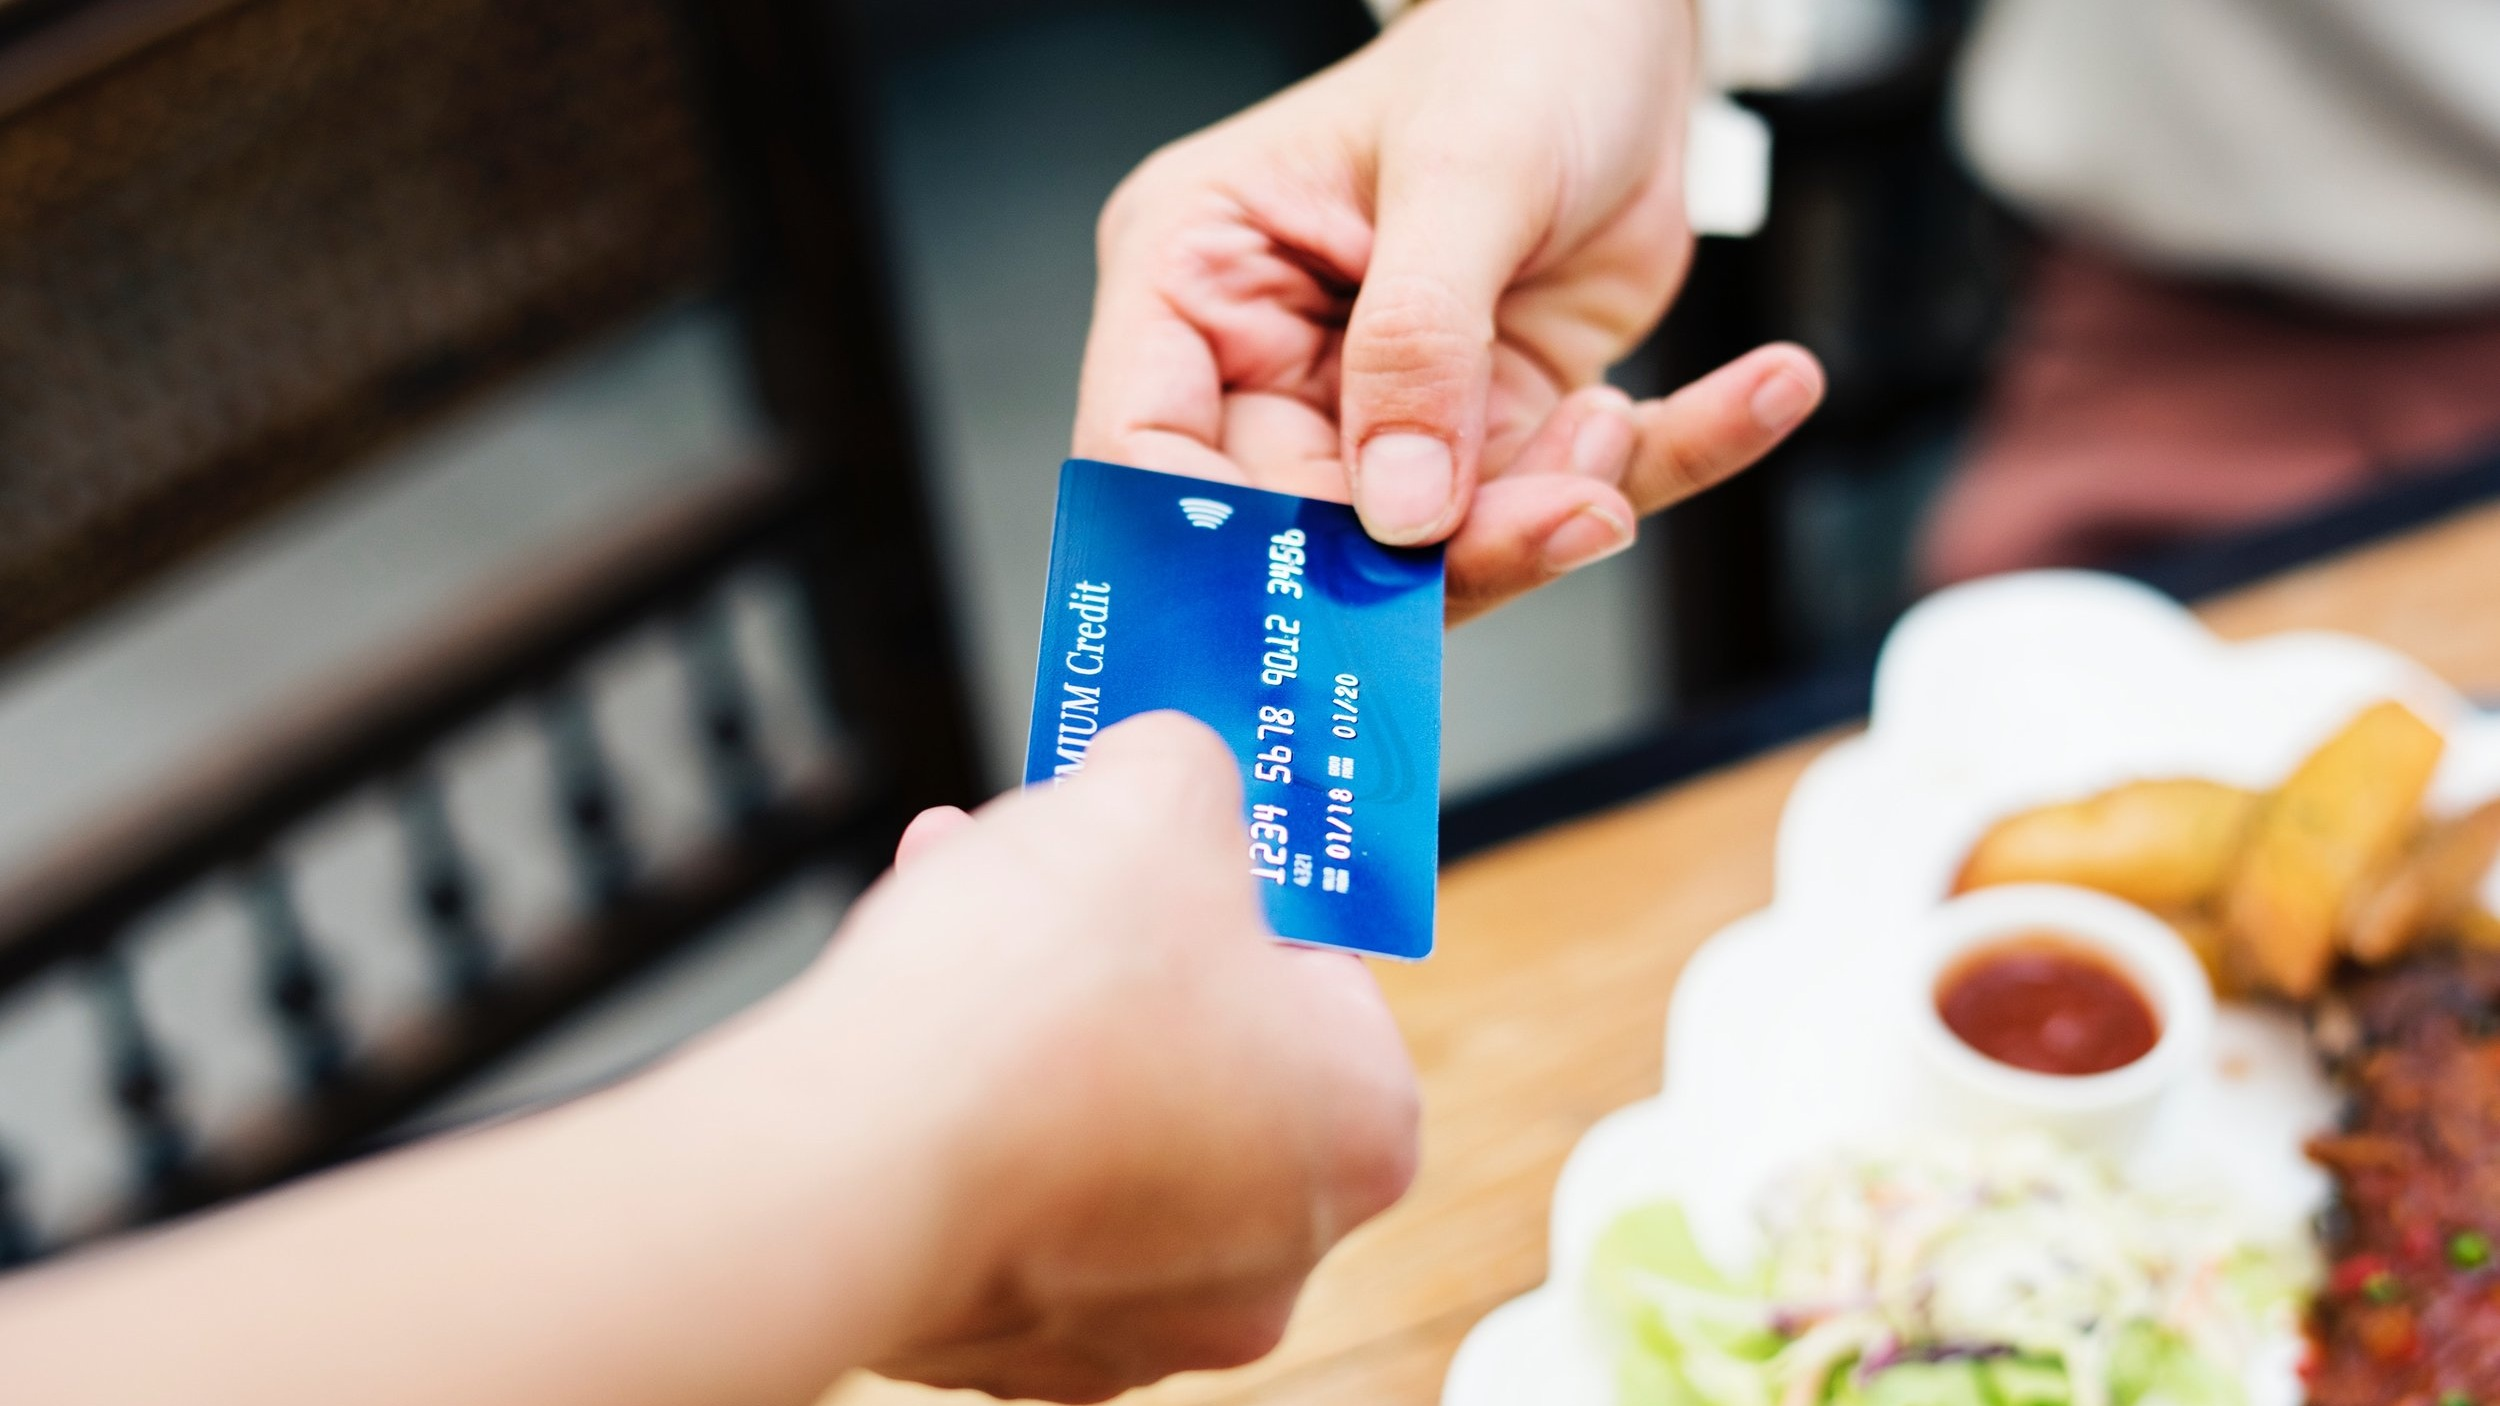 Prepaid Debit Cards and Retail Gift Cards - Offers both filtered and universally accepted prepaid debit cards• Fixed denominations or reloadable• From all major processing networksNearly 300 retail gift cards available in multiple denominations• Physical cards or eCards available